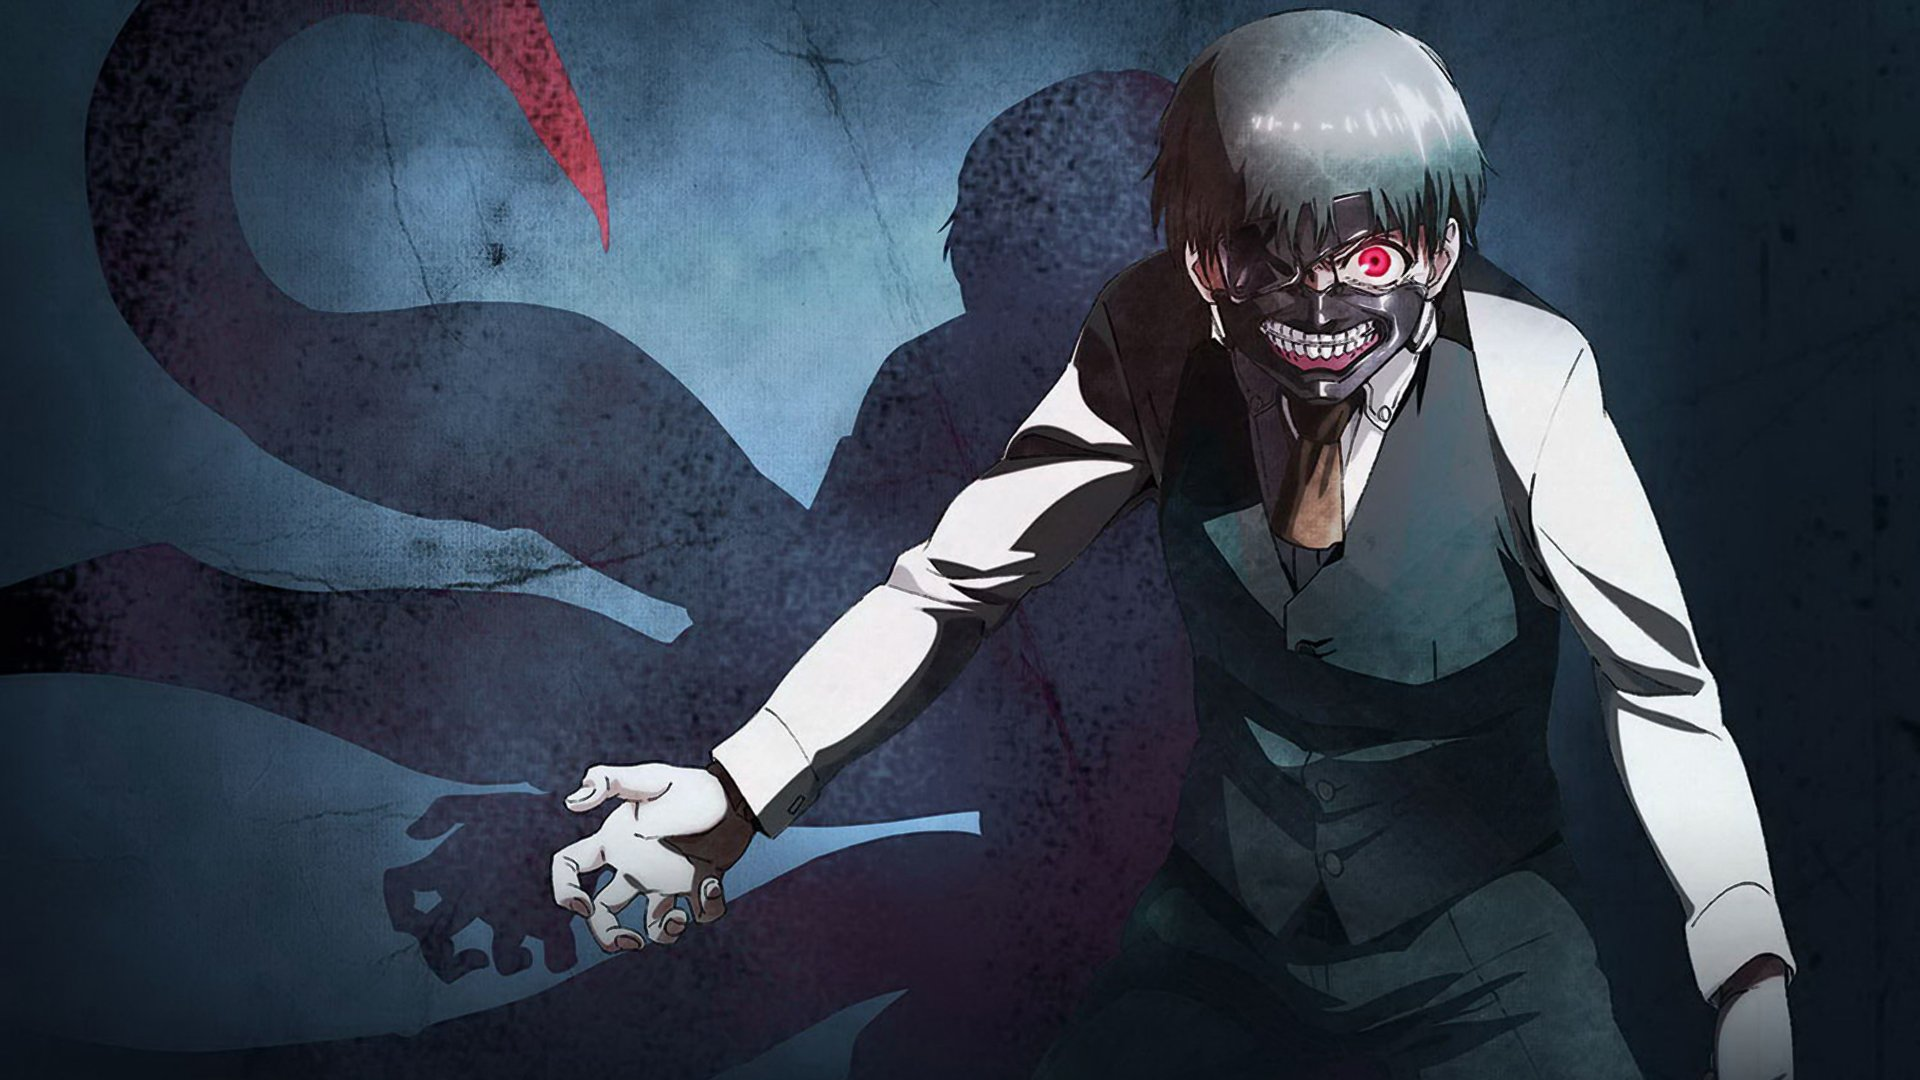 50 Tokyo Ghoul Kaneki Ken Wallpaper On Wallpapersafari